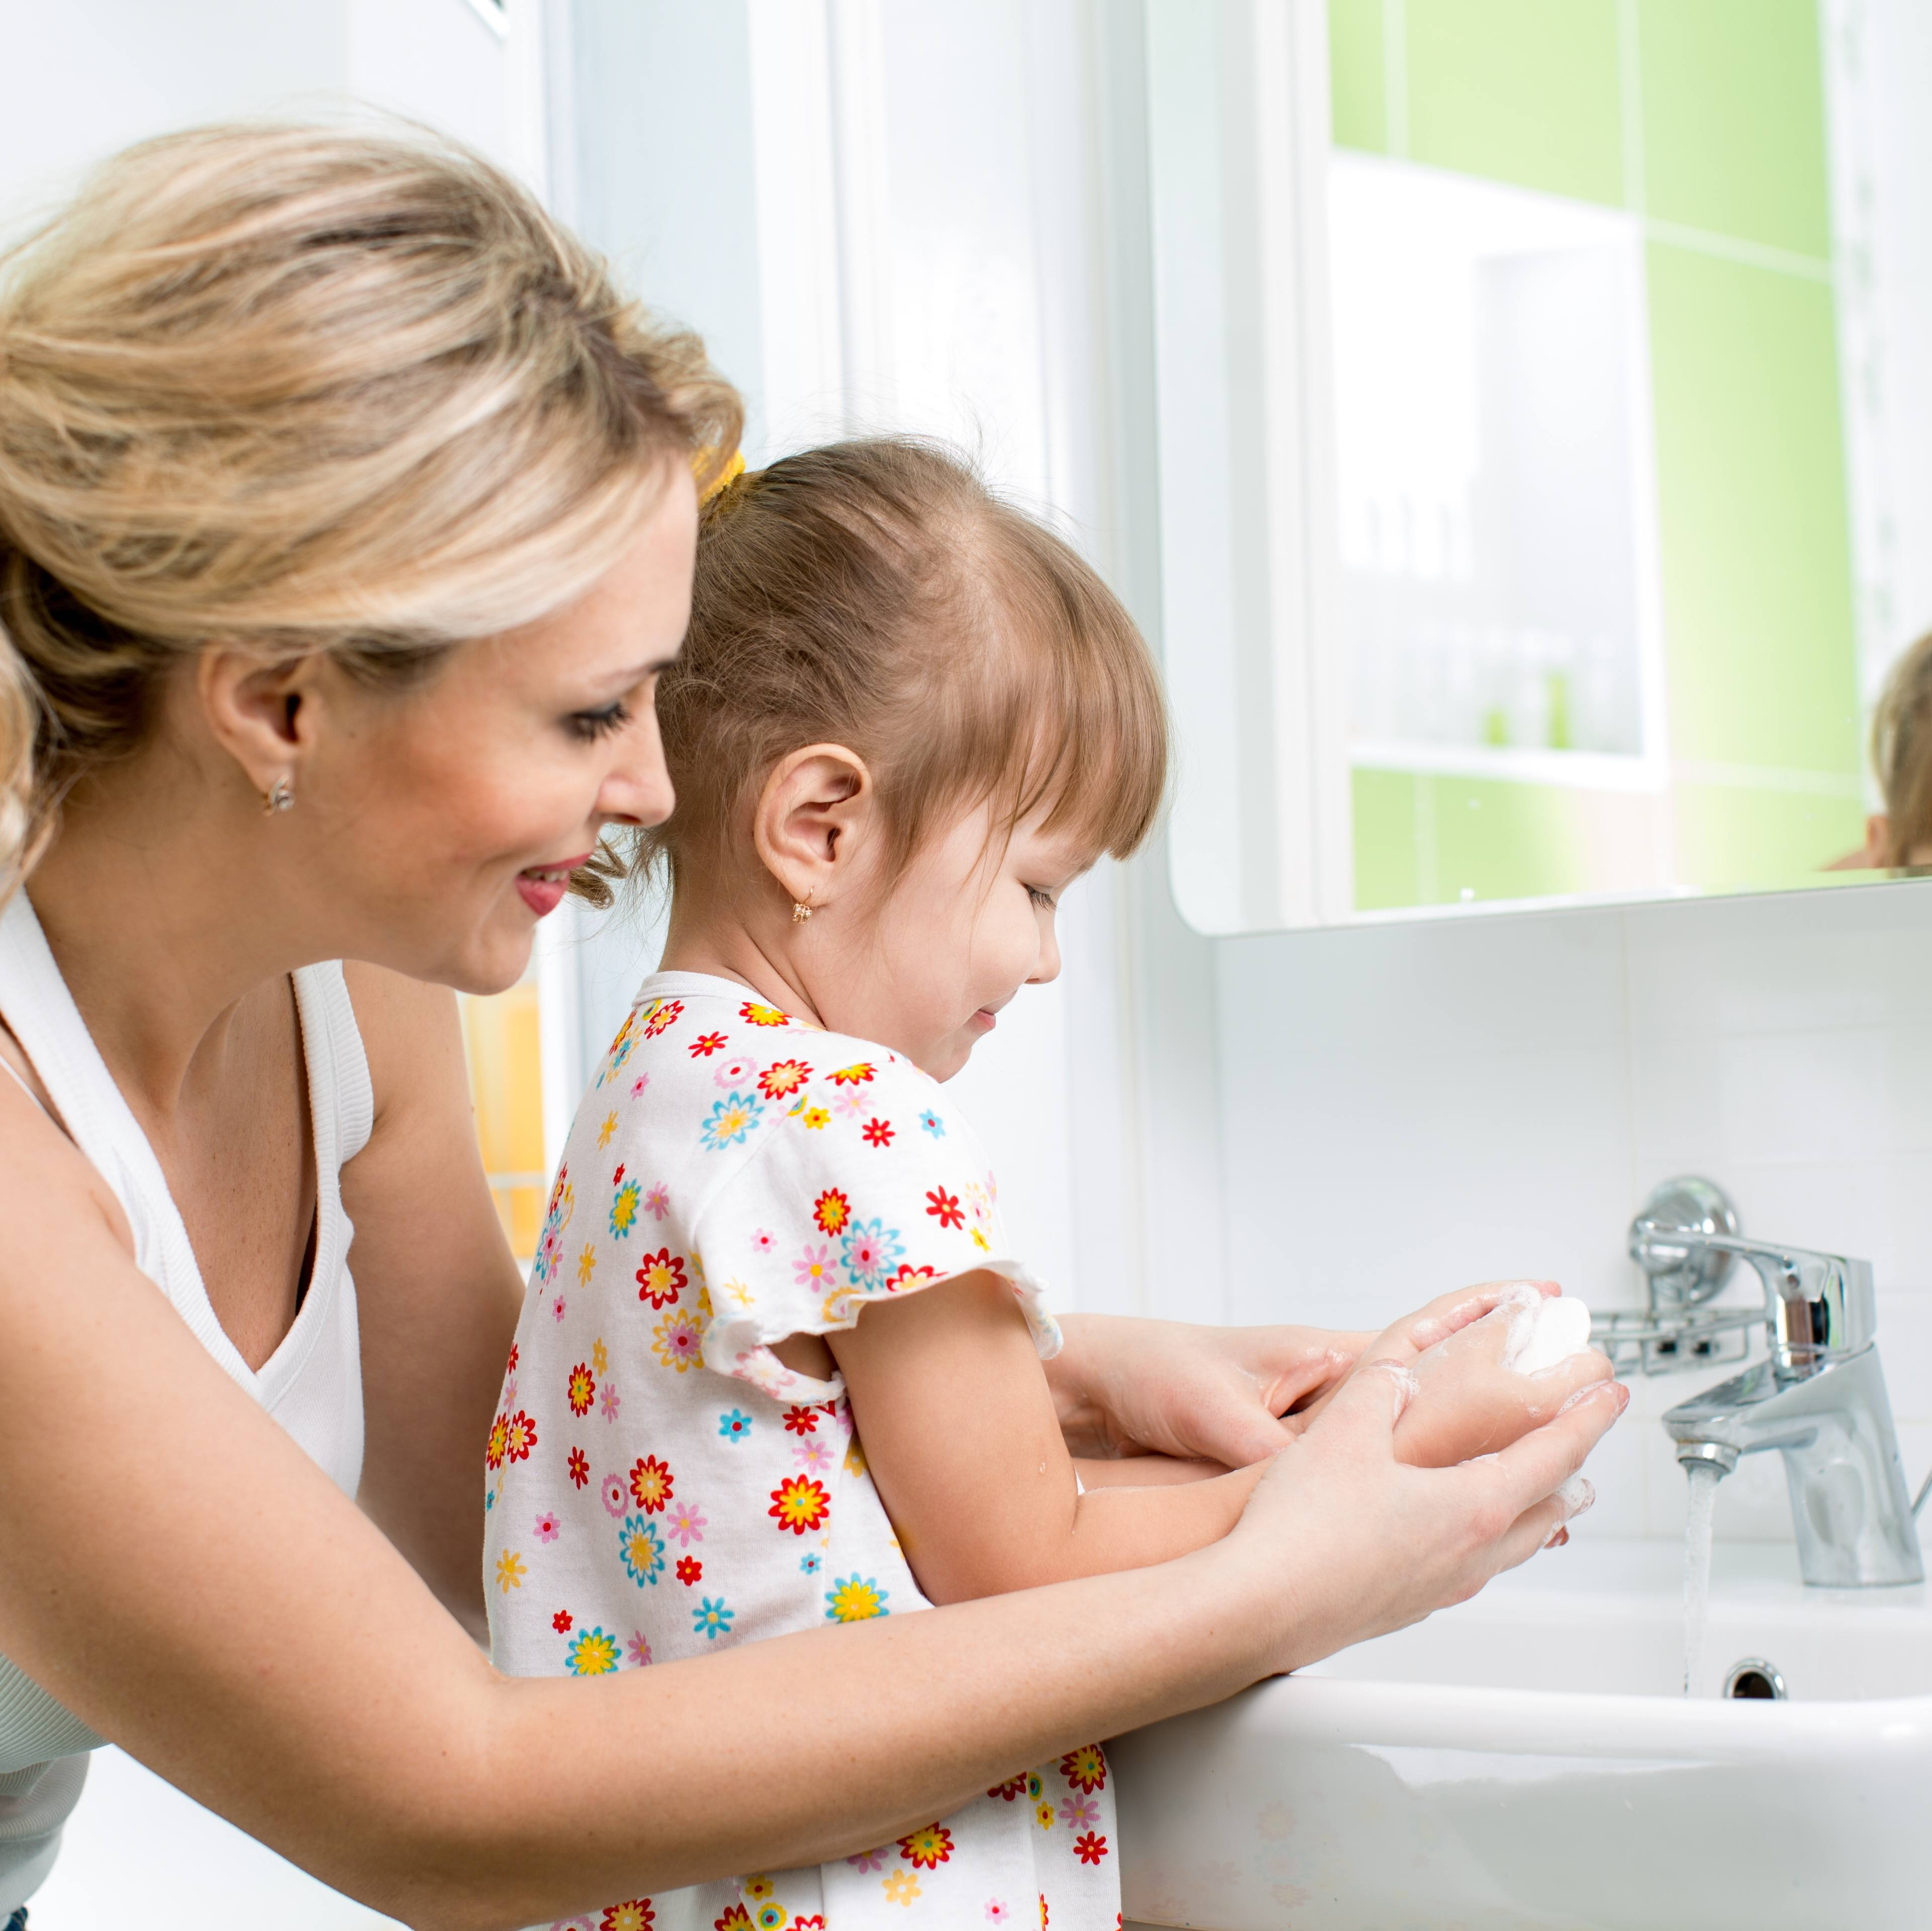 a young women with a child at a bathroom sink helping the little girl wash her hands